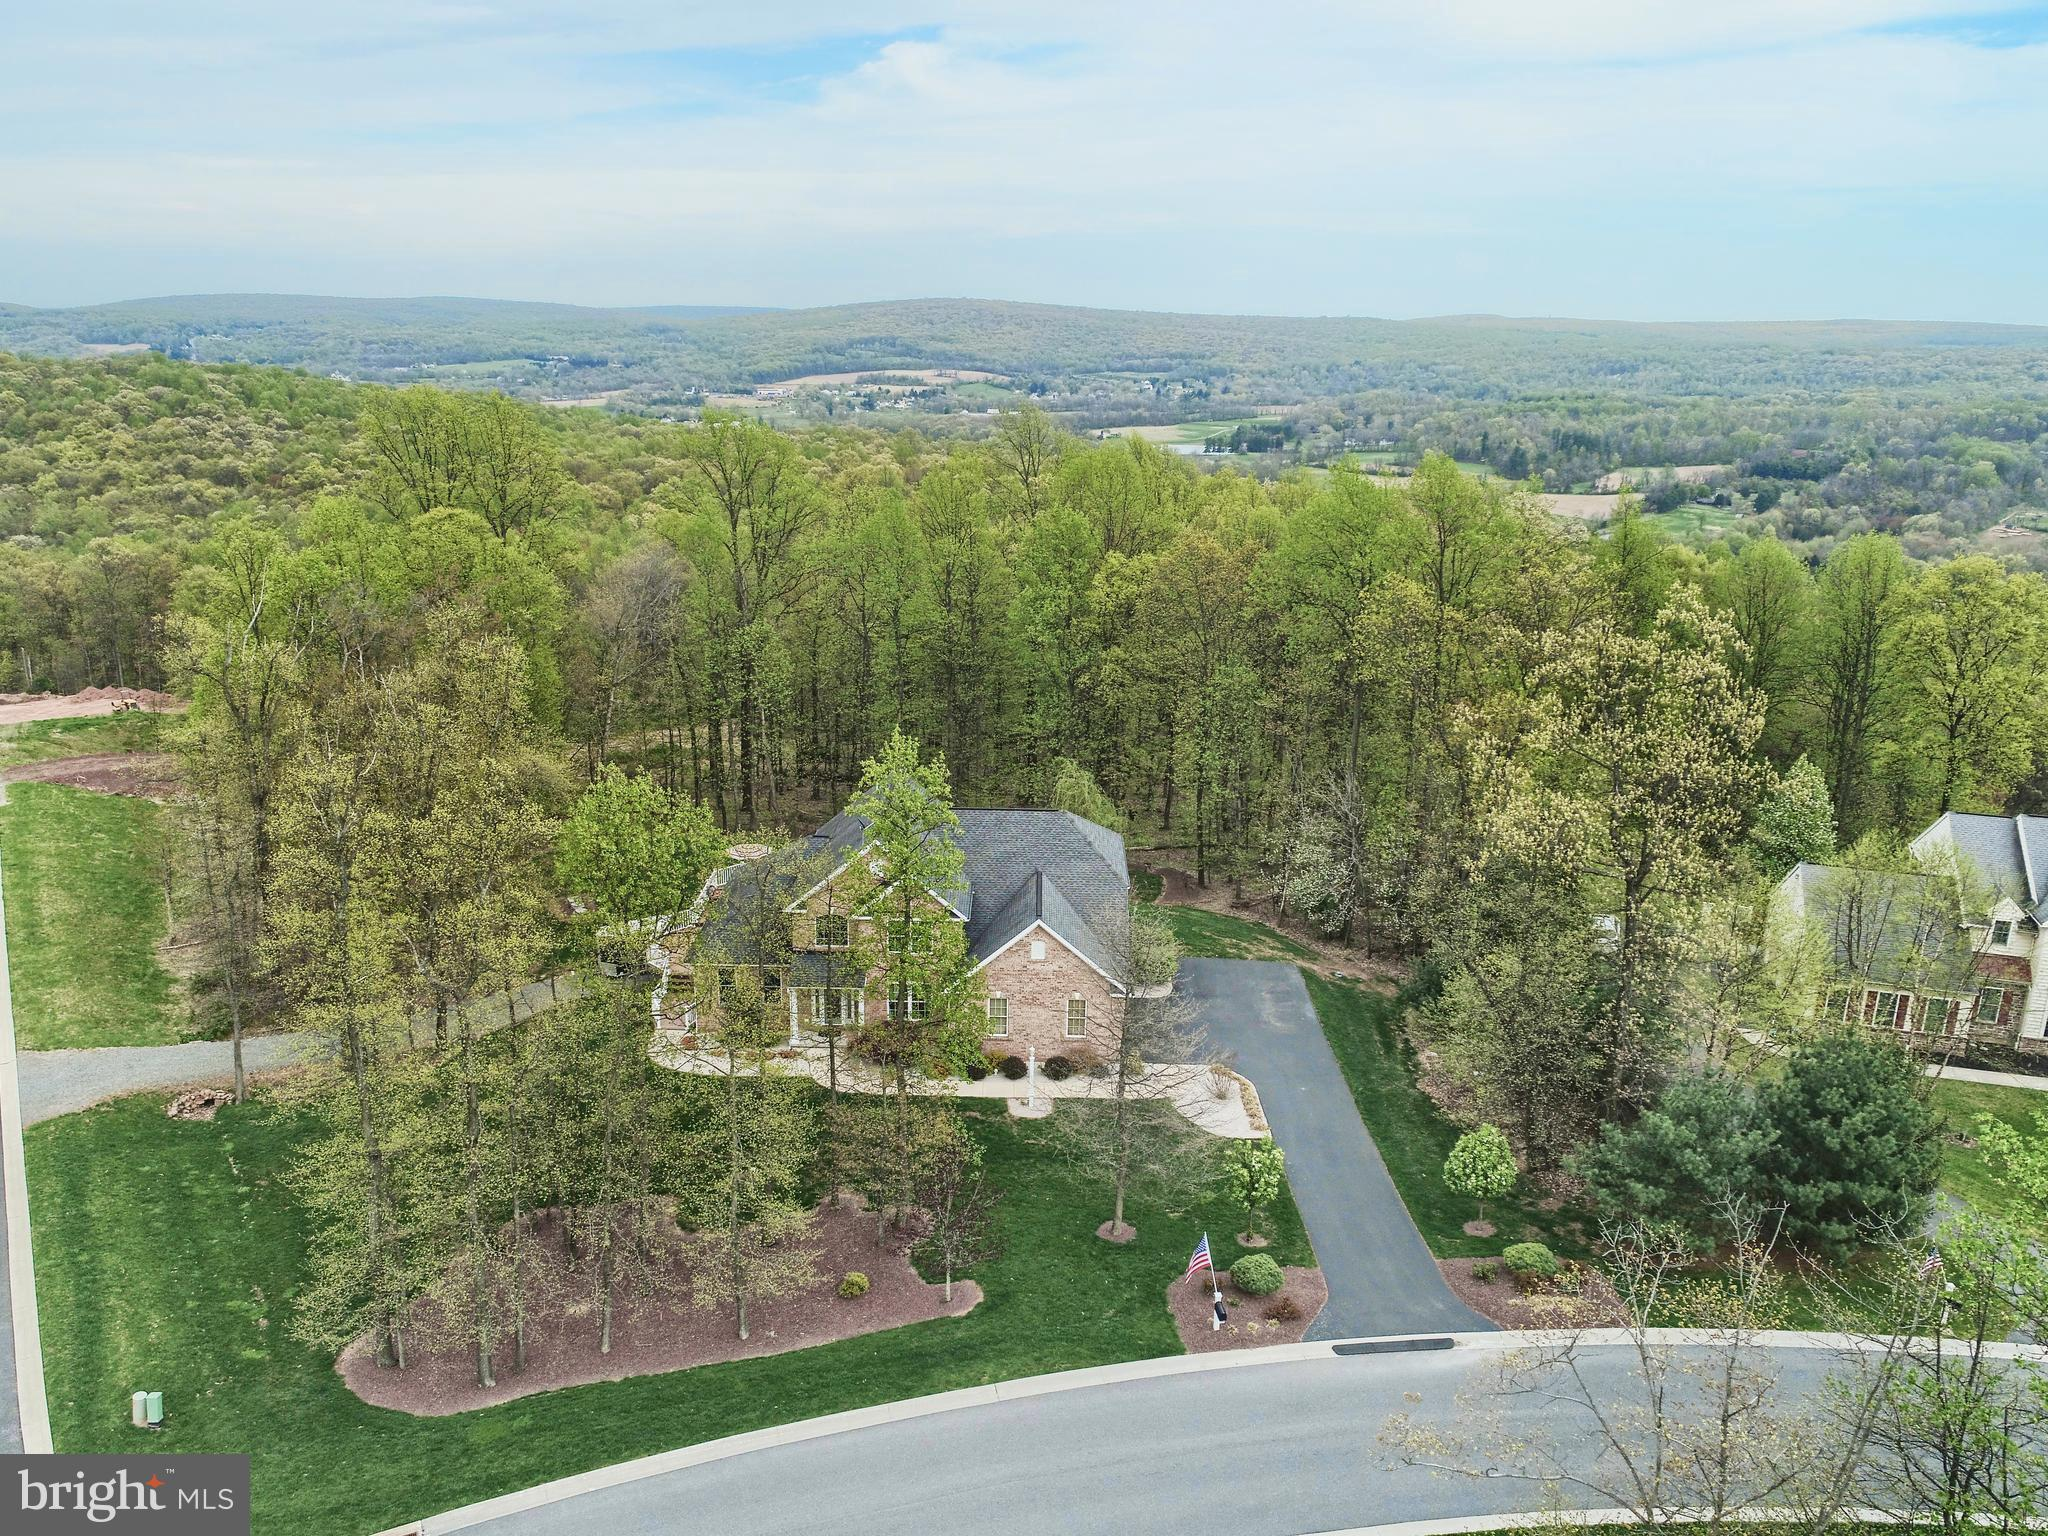 162 OVERLOOK ROAD, MORGANTOWN, PA 19543